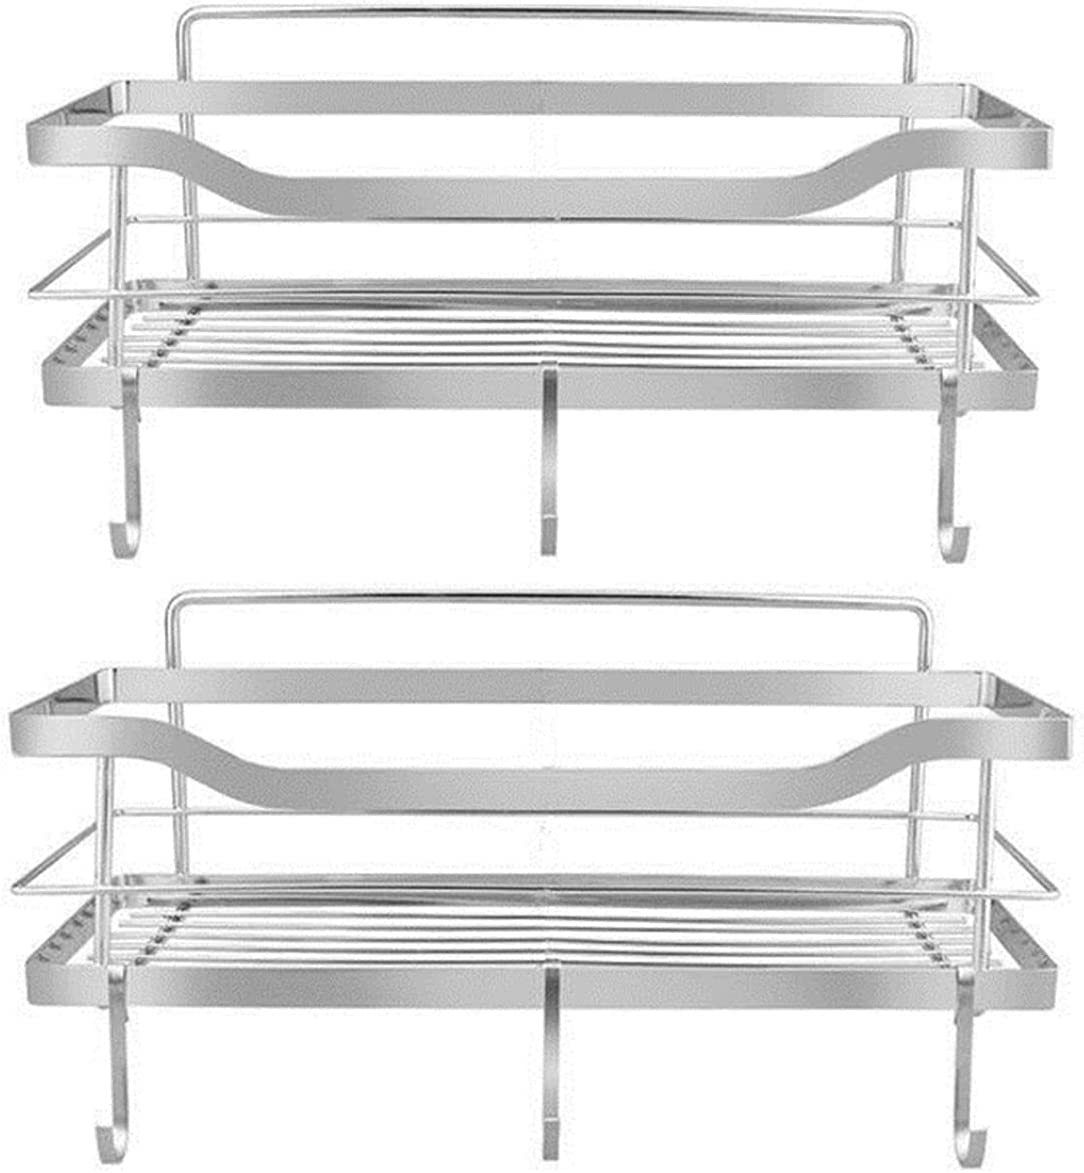 HAOANGZHE Shower Rack New mail order Non-Drilled Corner Wall-Mounte Sales